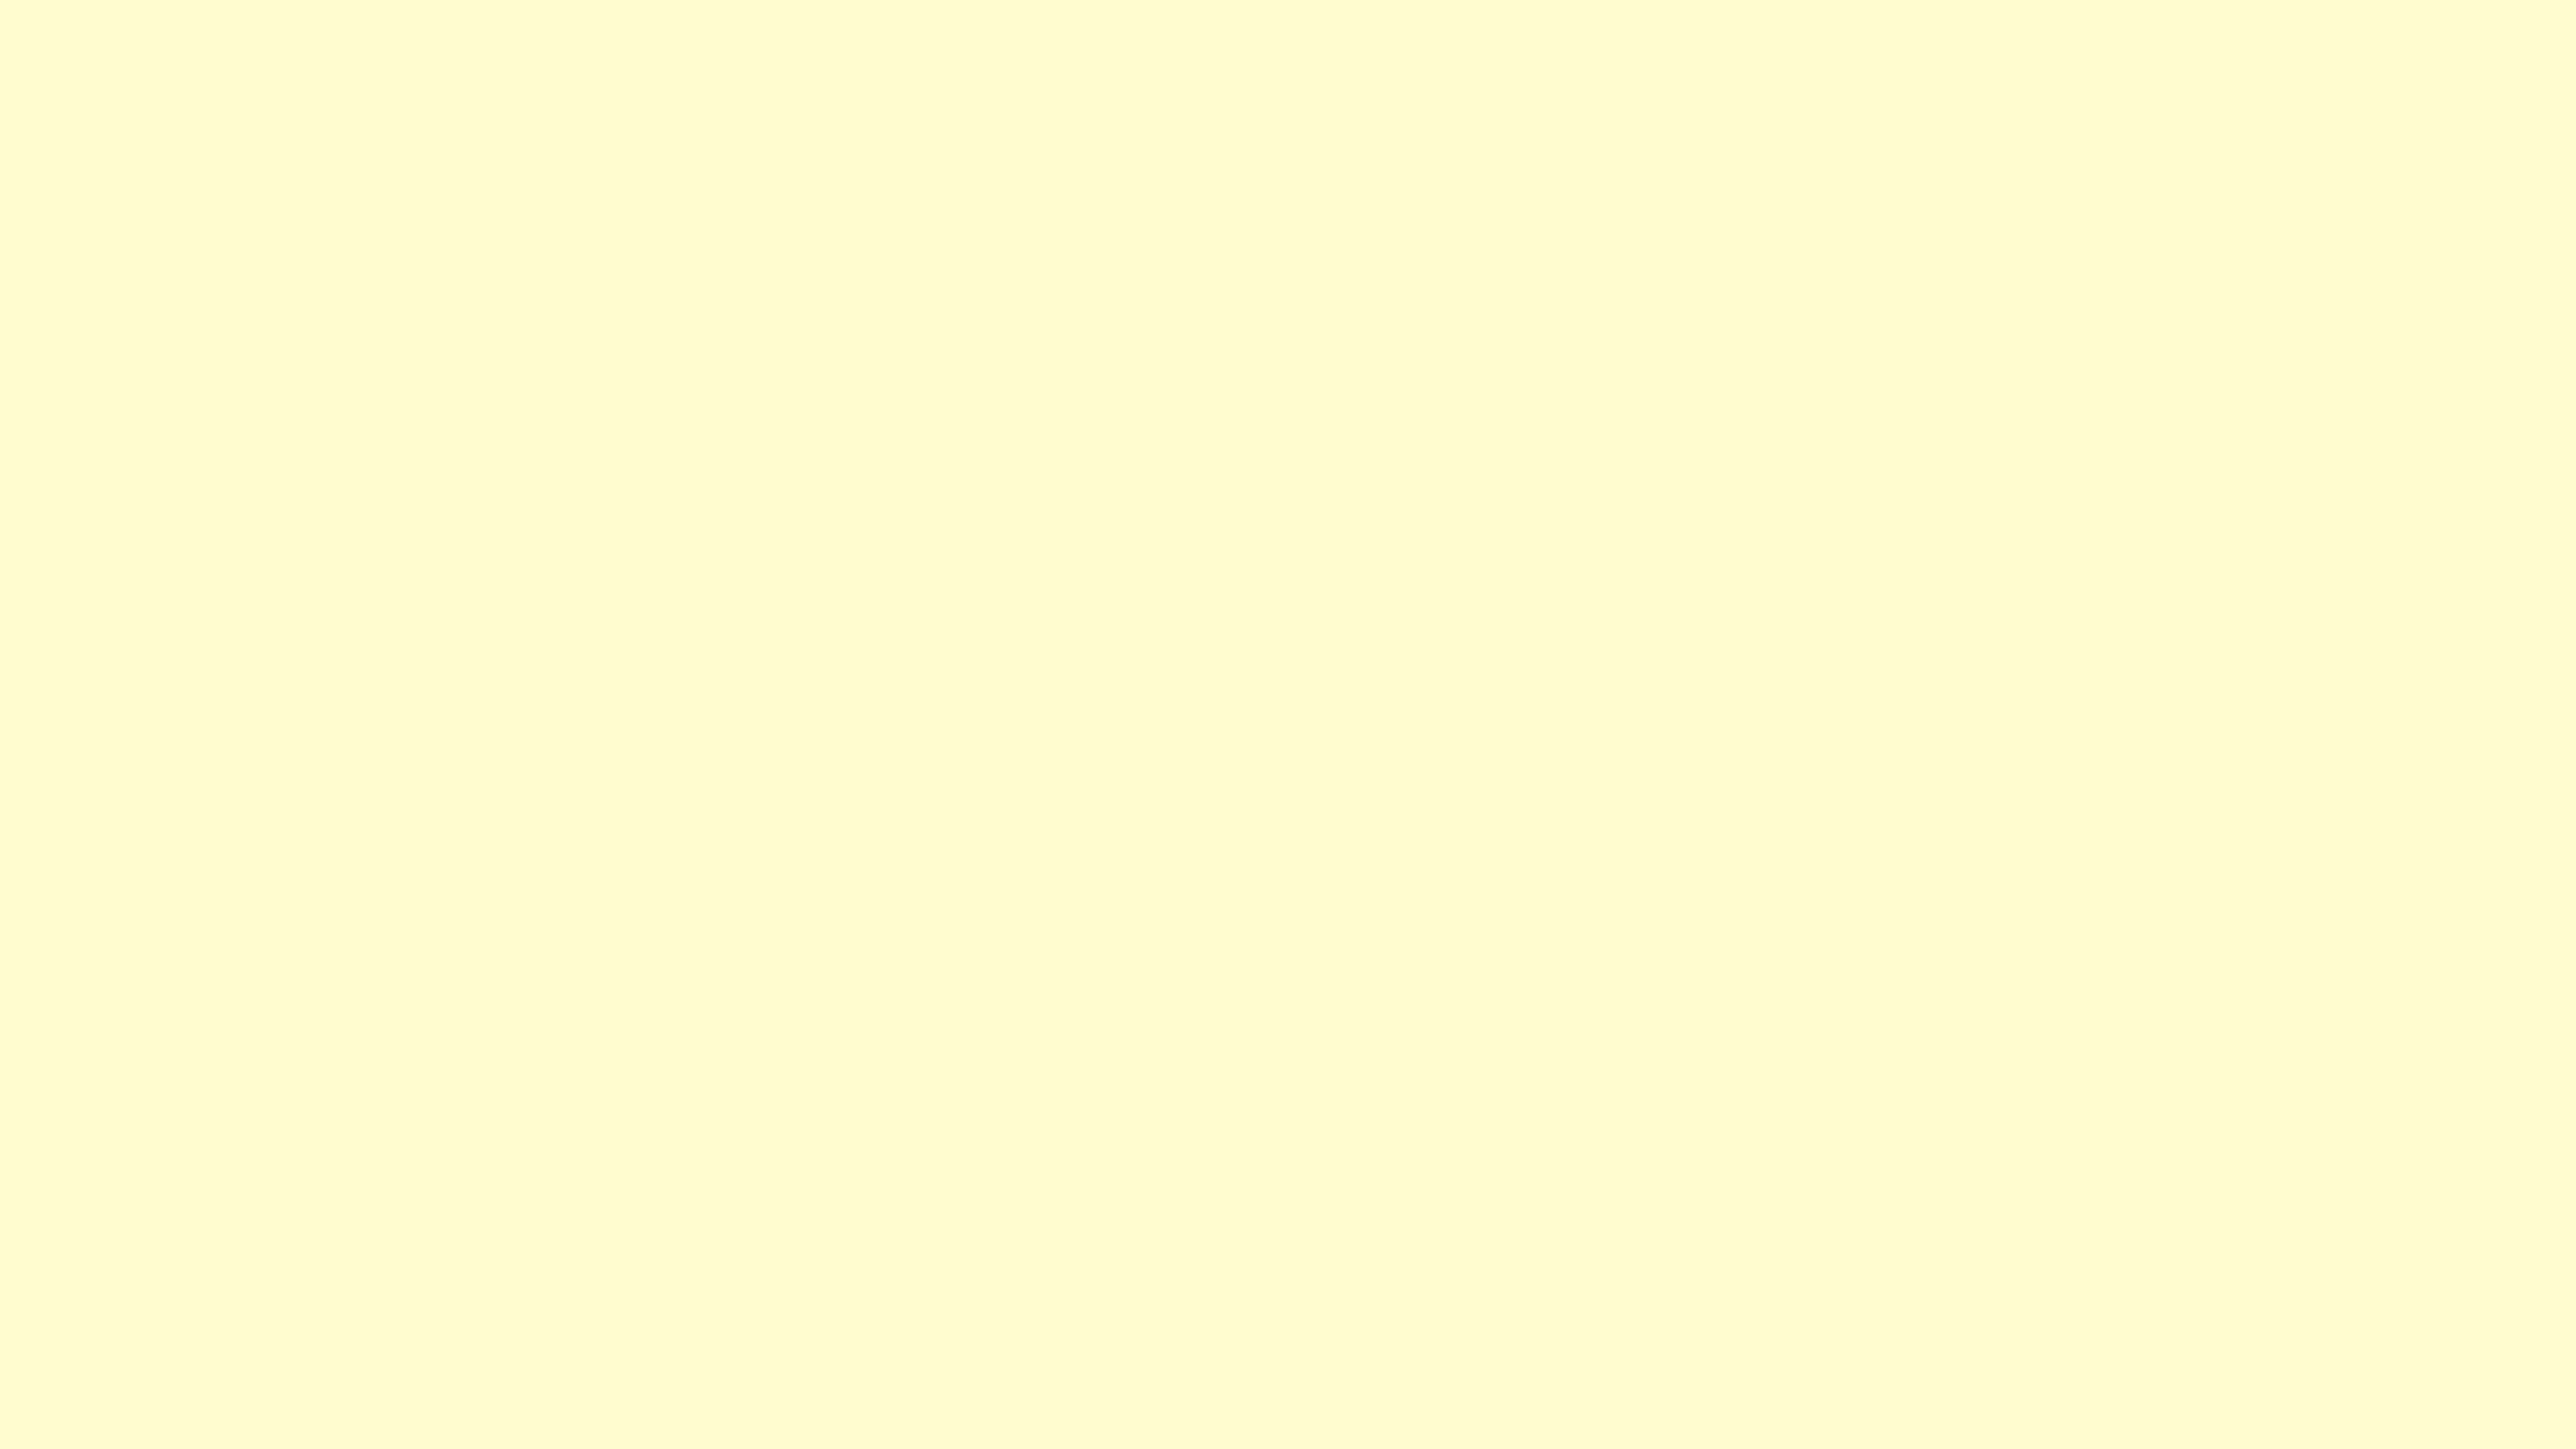 4096x2304 Cream Solid Color Background